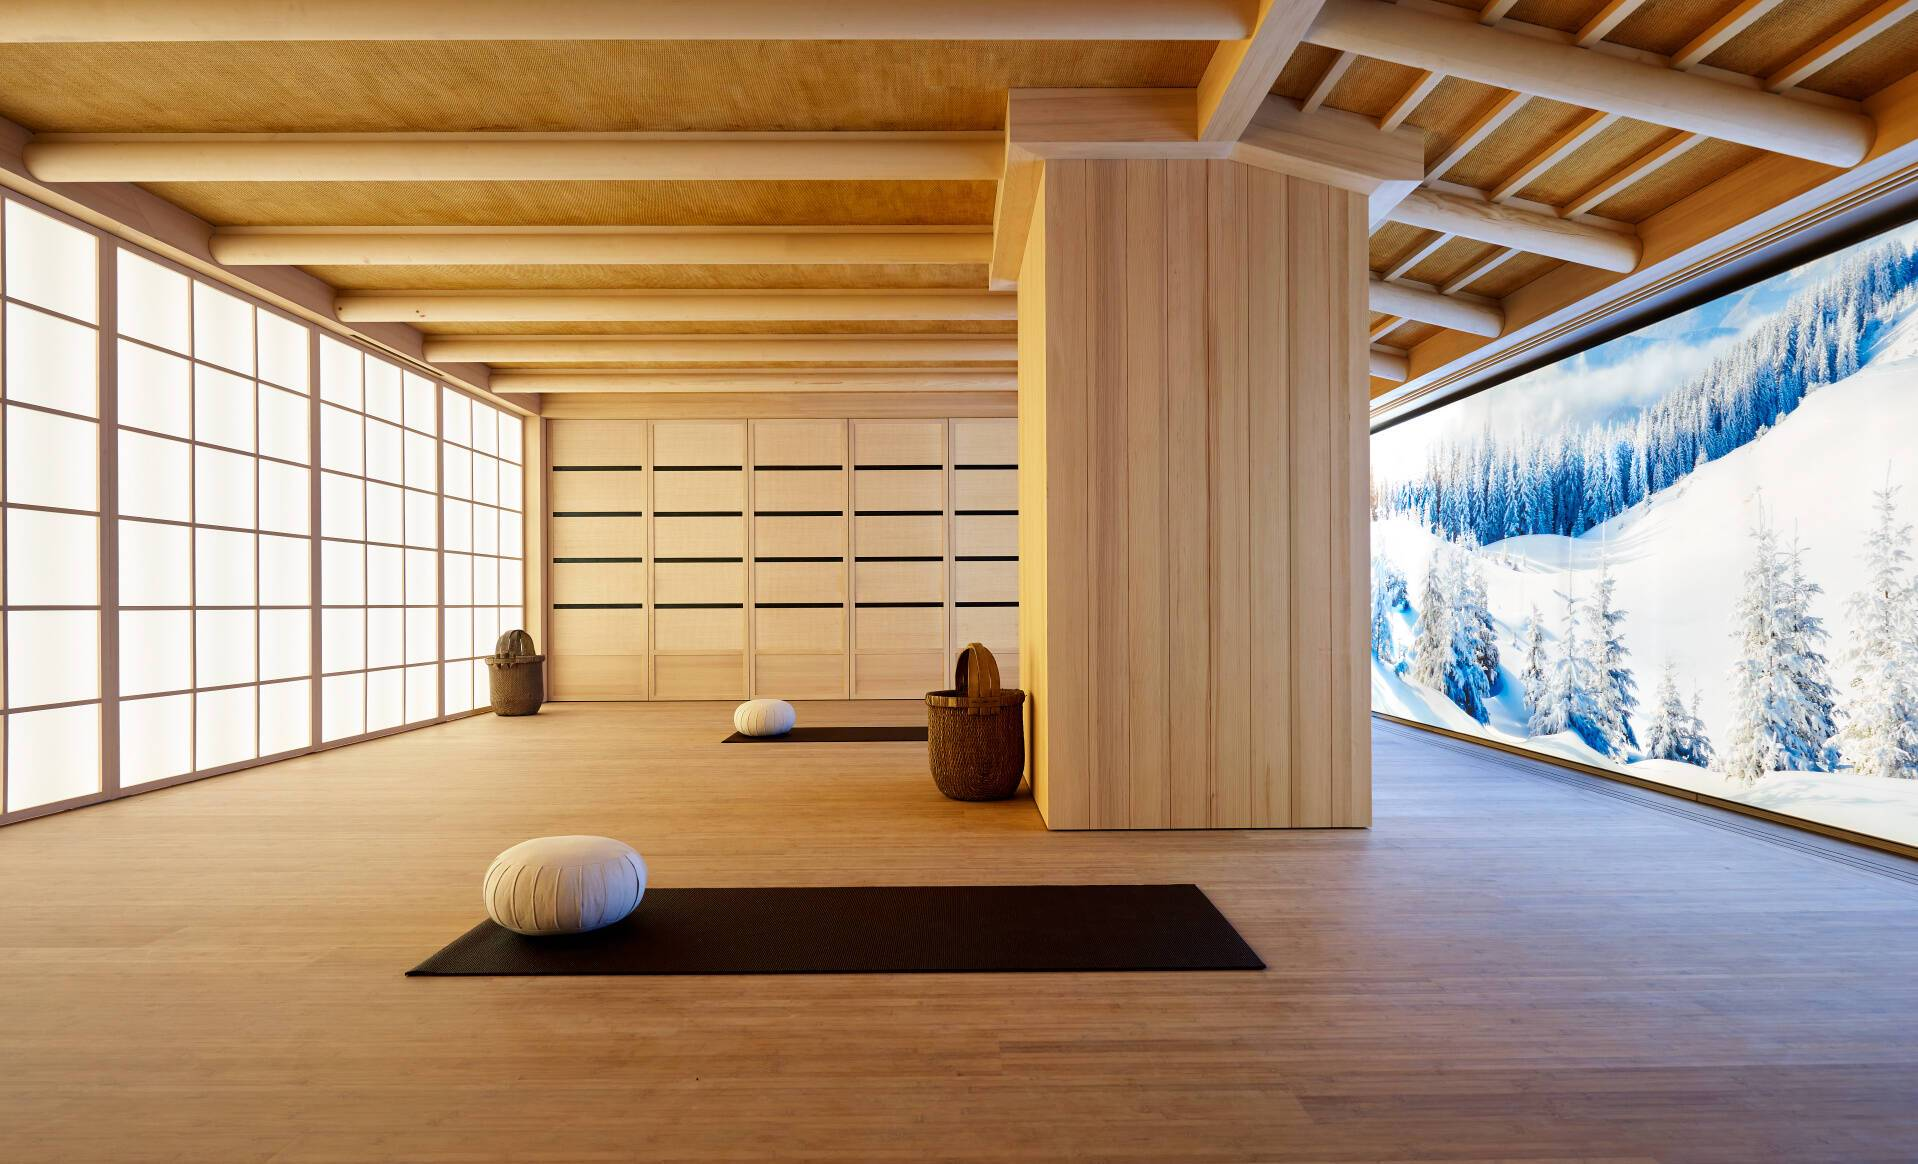 Aman Le Melezin Courchevel Yoga Studio